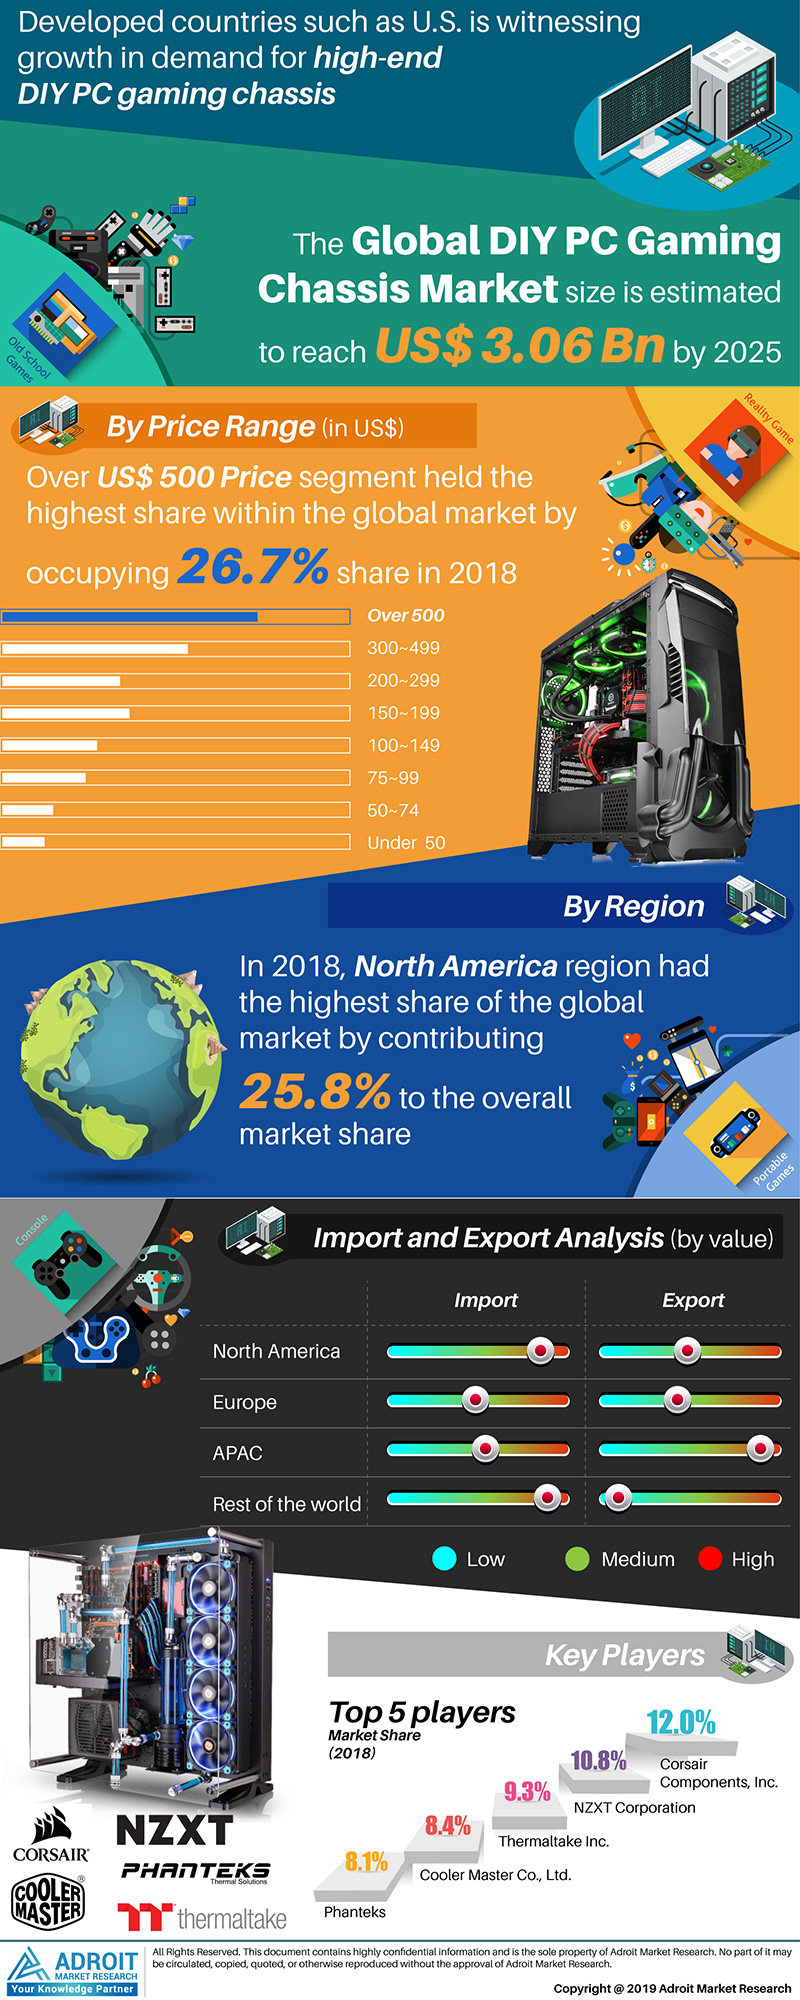 Global DIY PC gaming chassis Market Size 2017 By Price Range, Region and Forecast 2019 to 2025